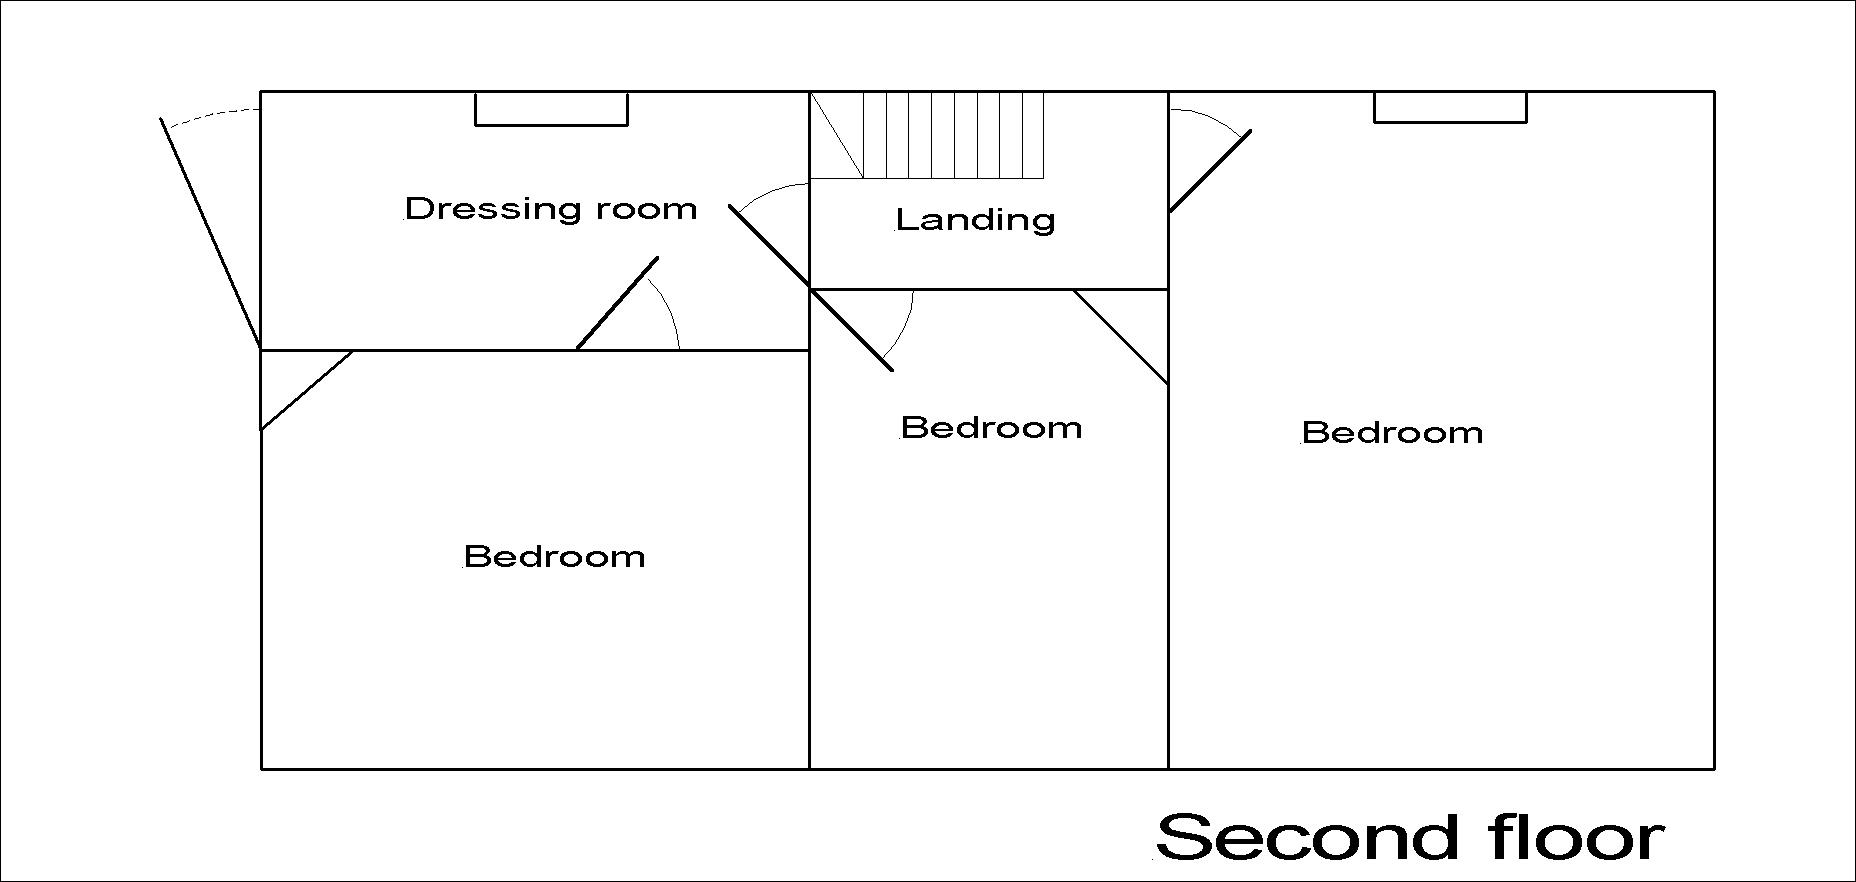 Lincoln Hall second floor plan.